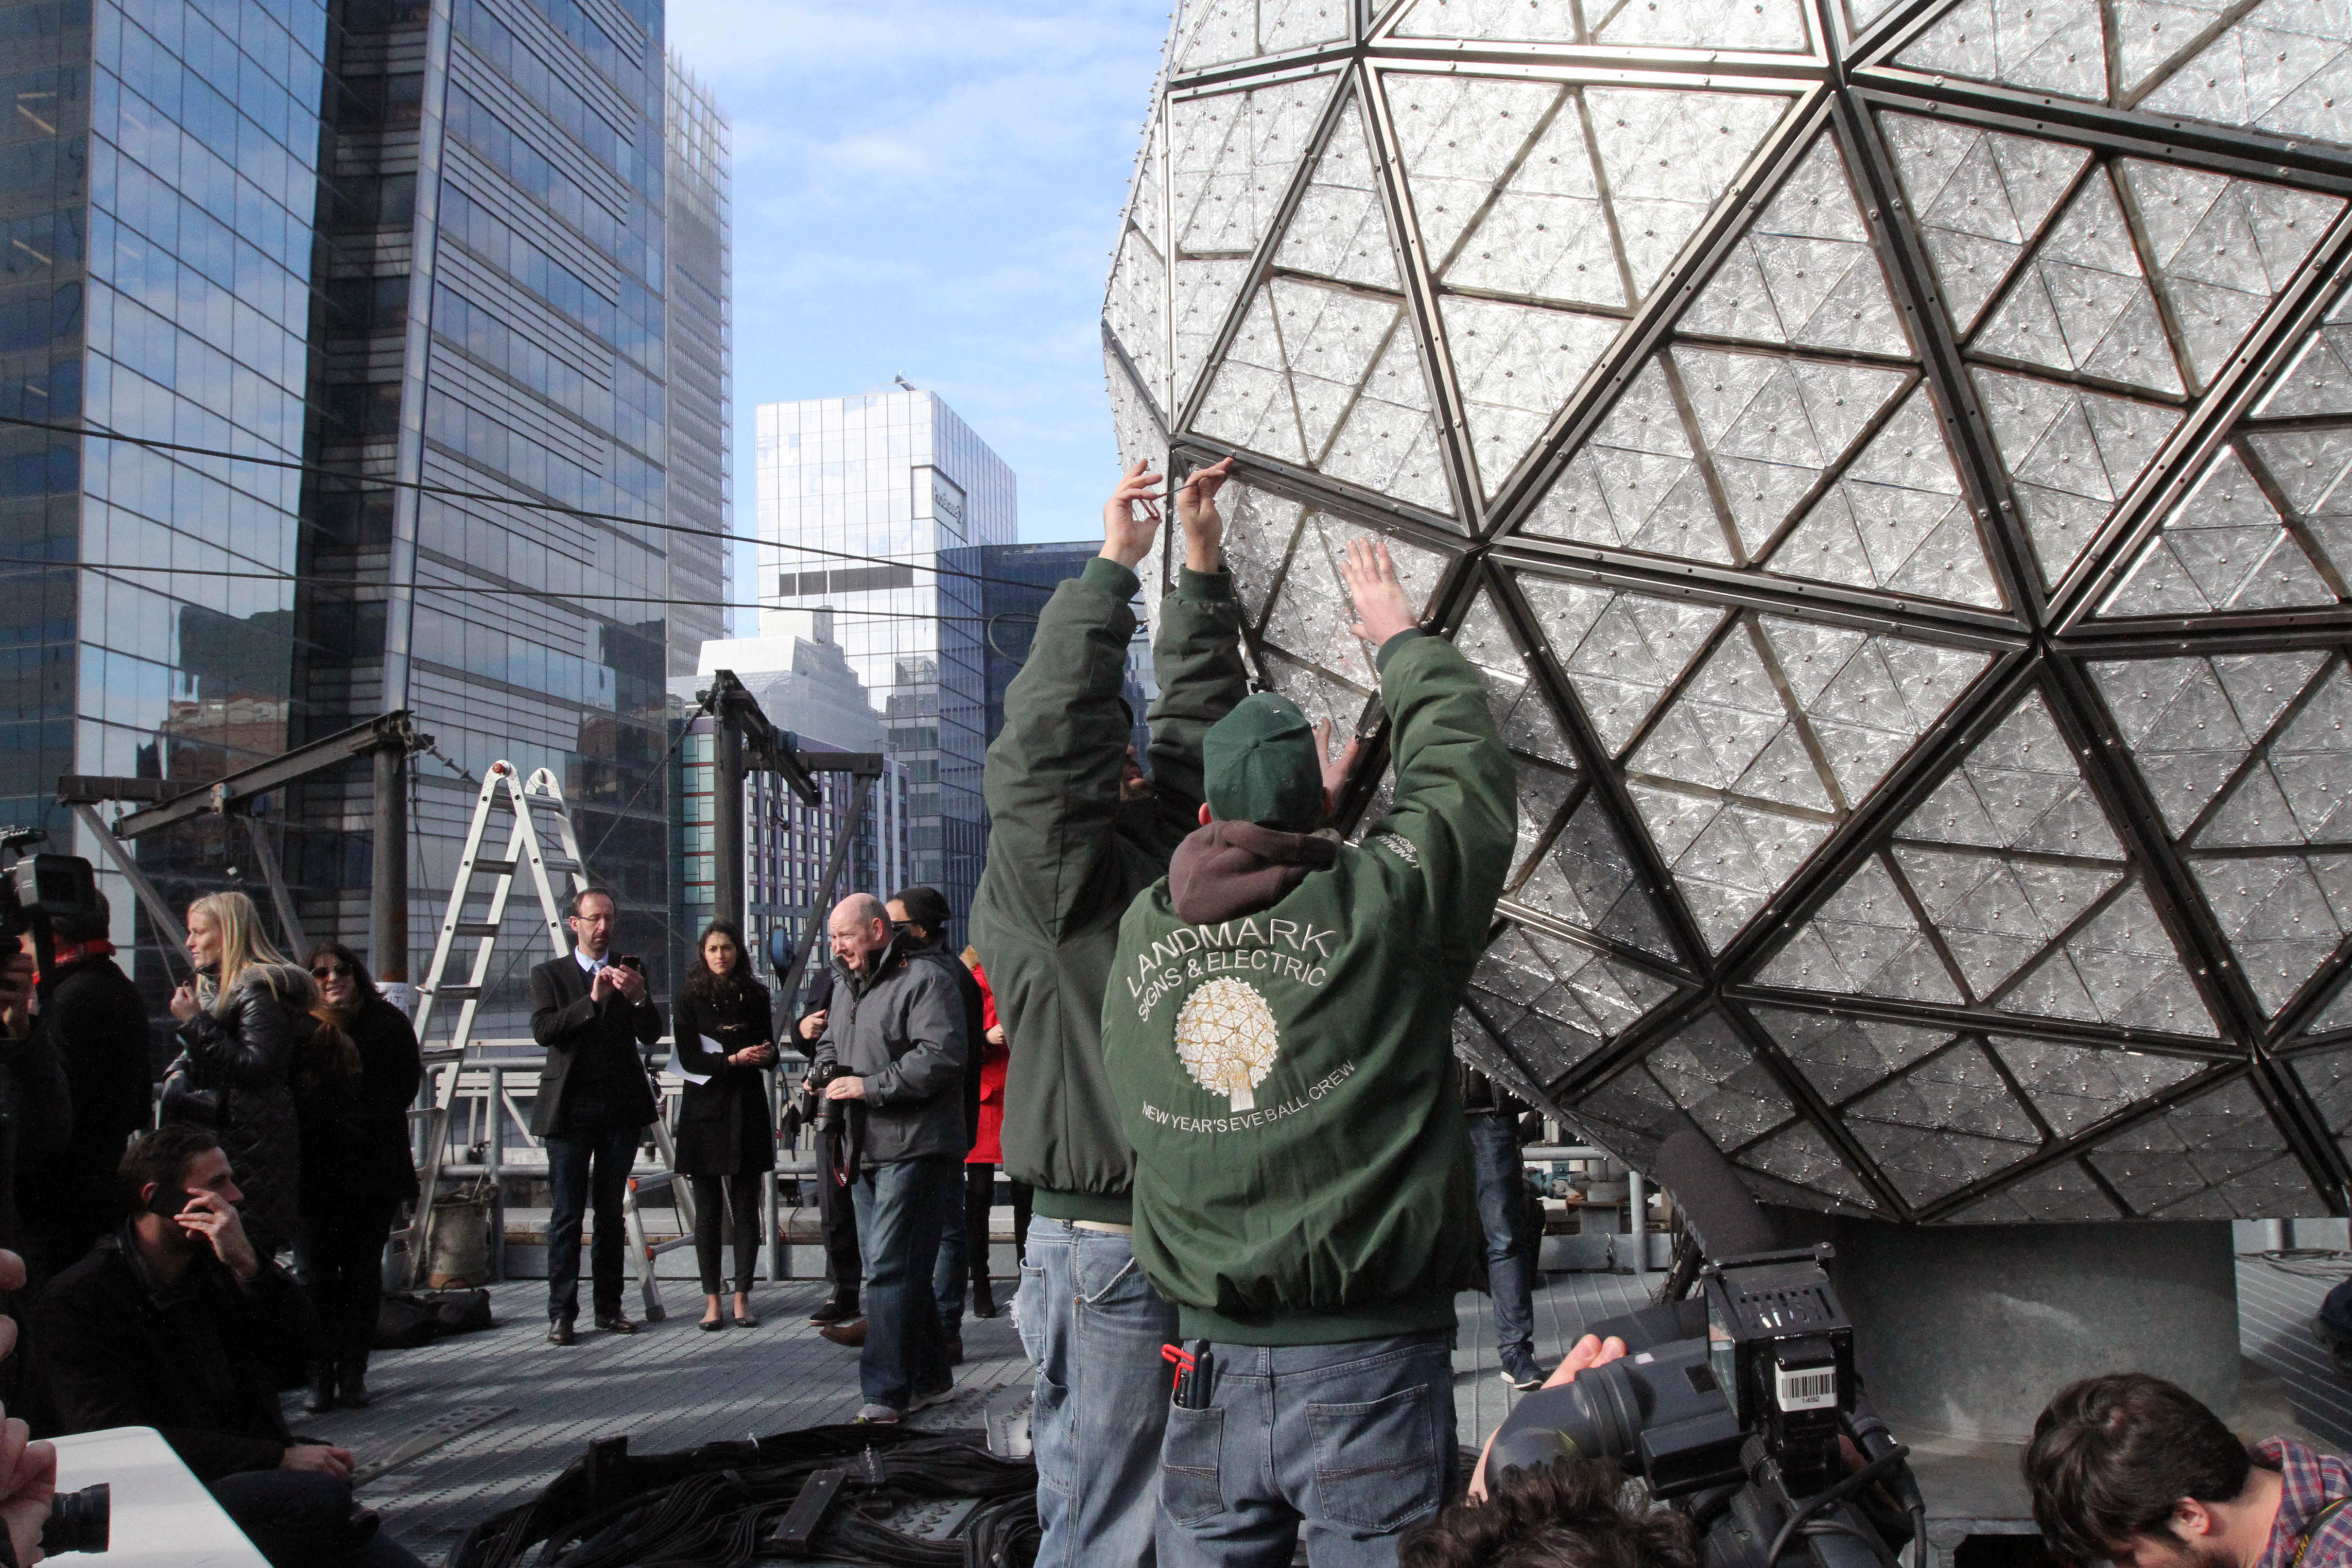 New York - Times Square's Crystal Ball Gets Gleaming New Skin